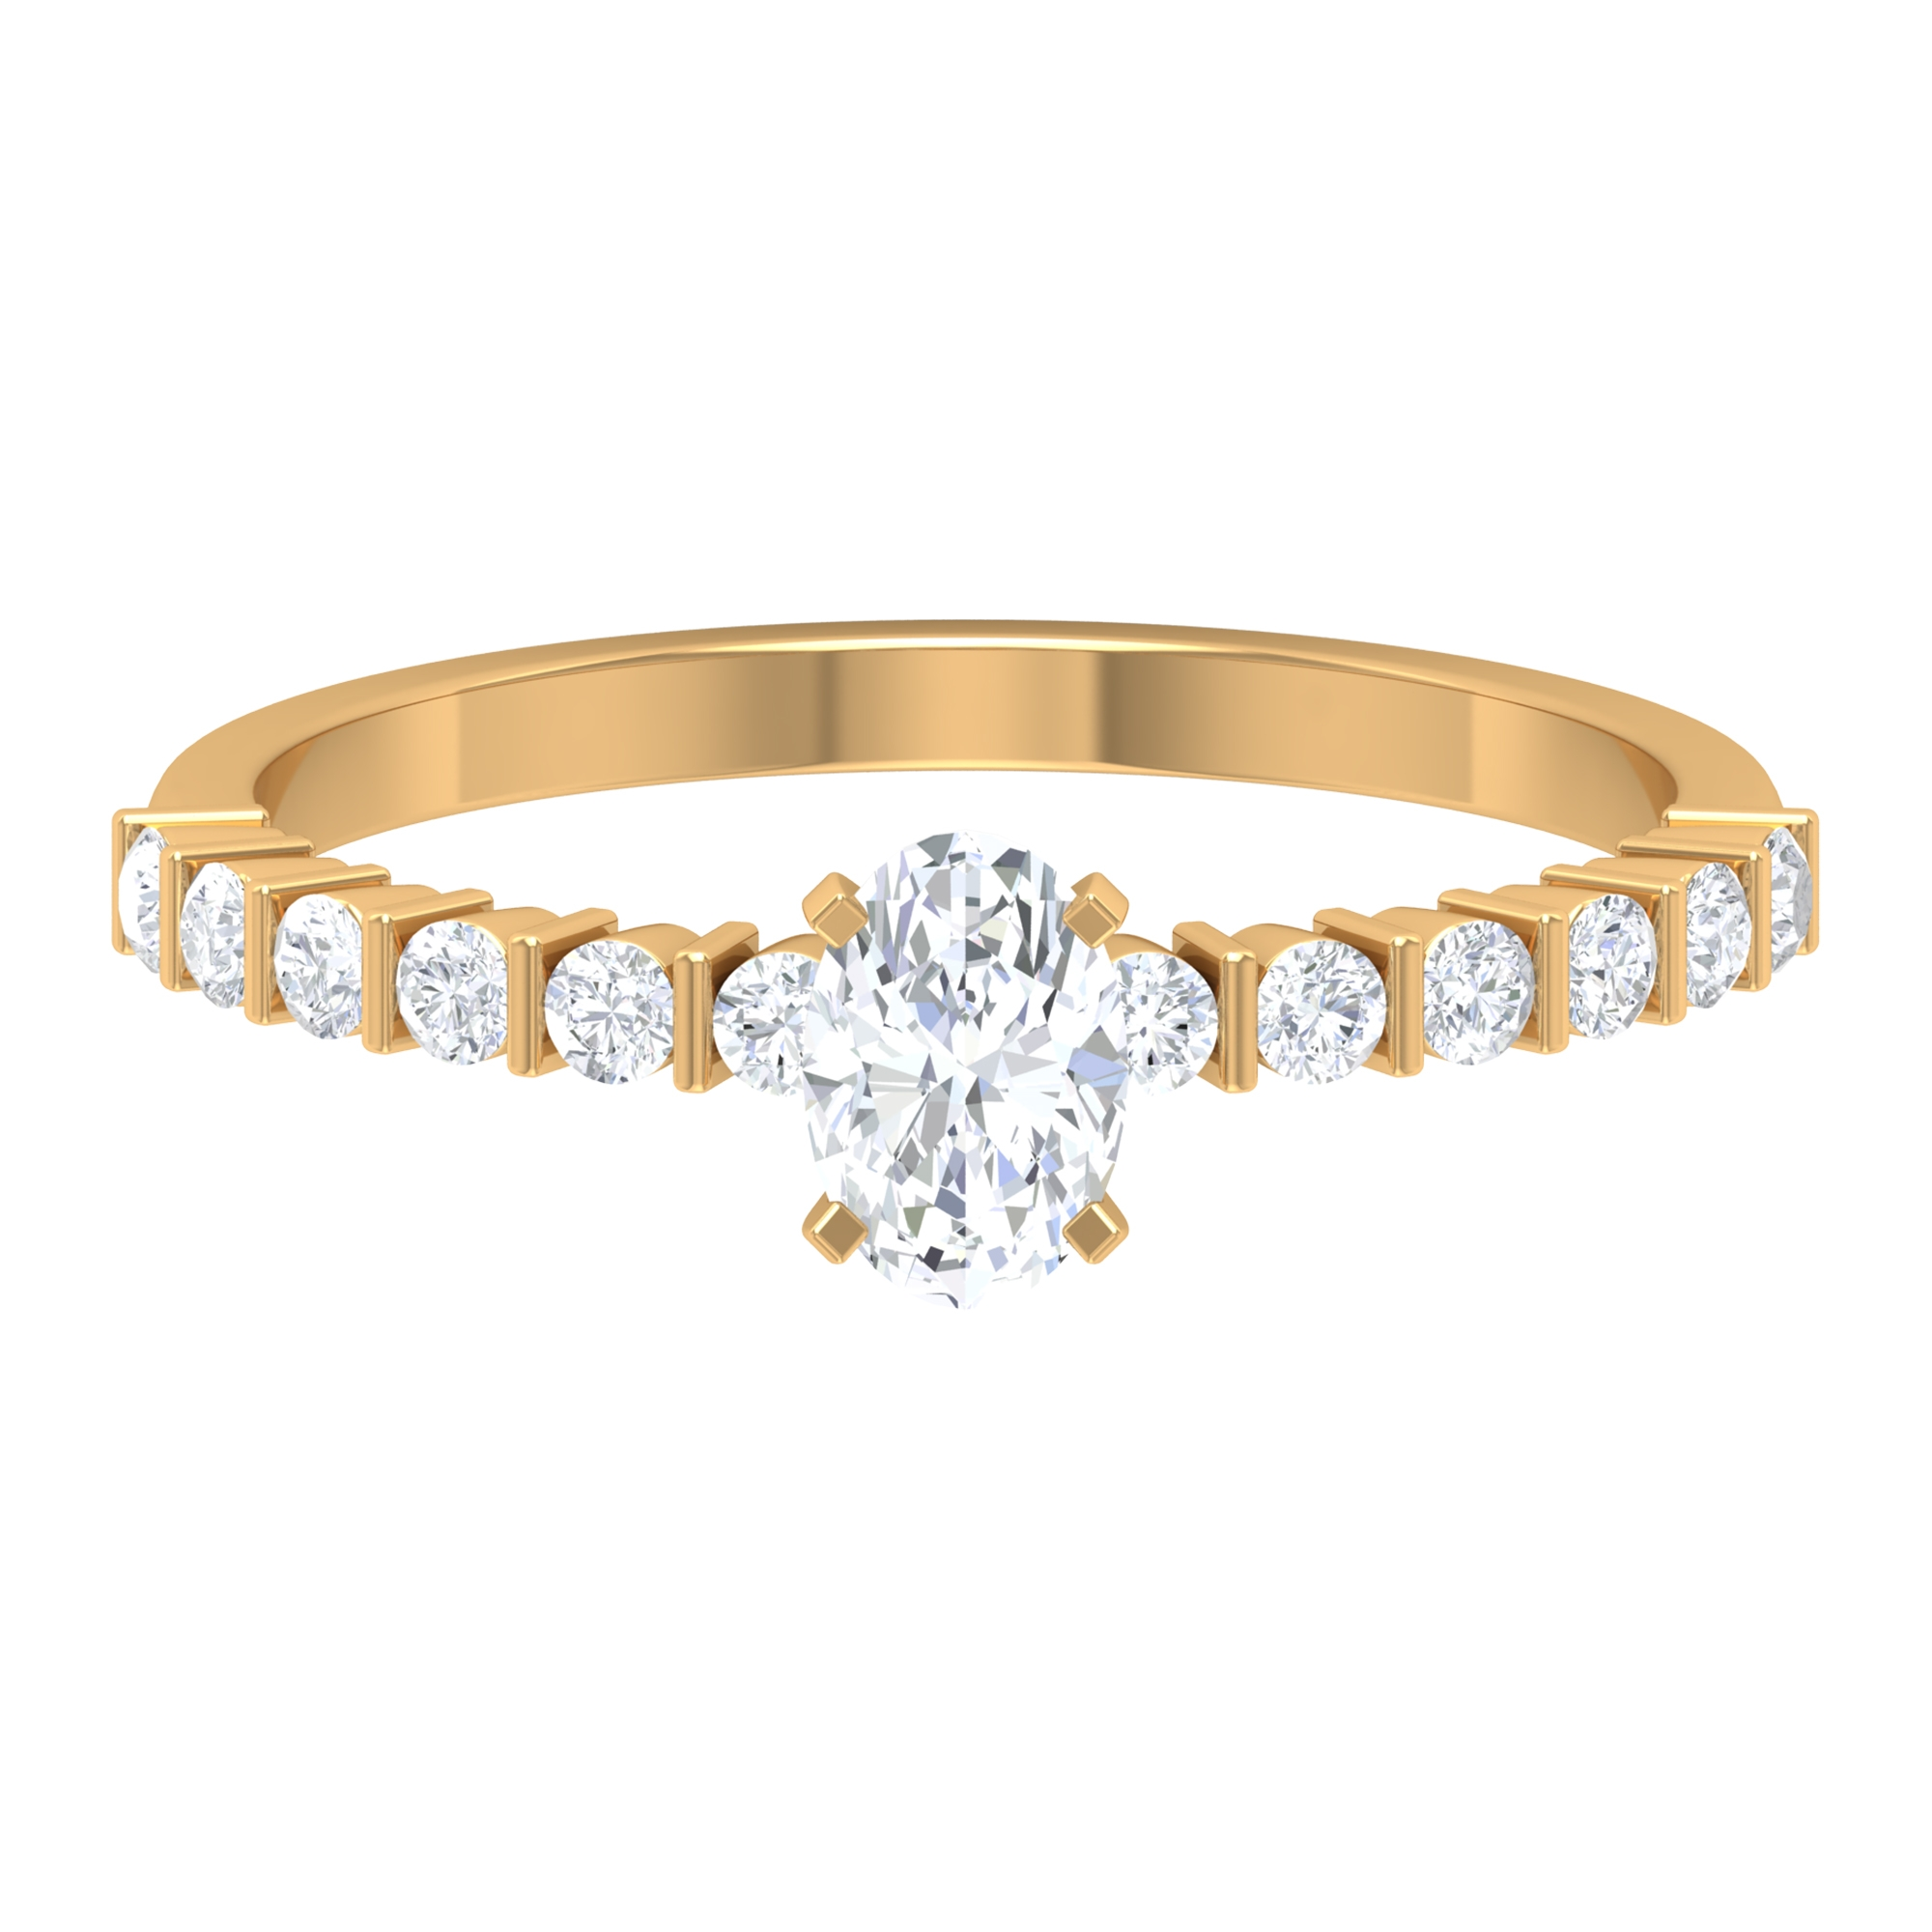 Square Prong Set 4X6 MM Oval Cut Diamond Solitaire Ring with Bar Set Side Stones